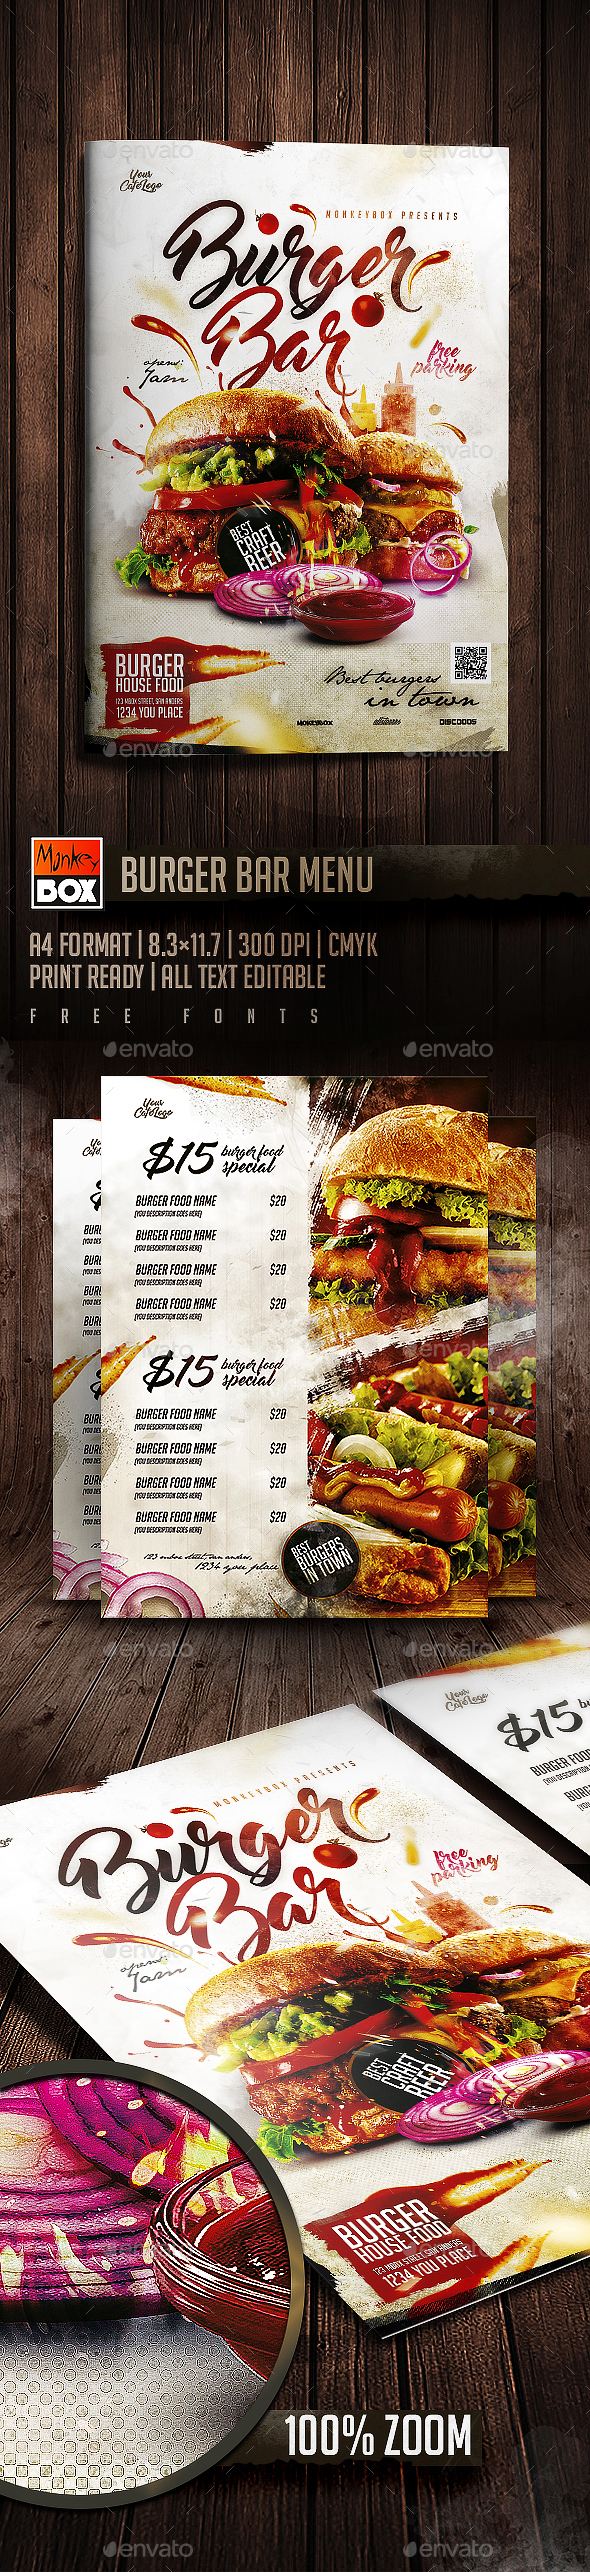 Burger Bar Menu